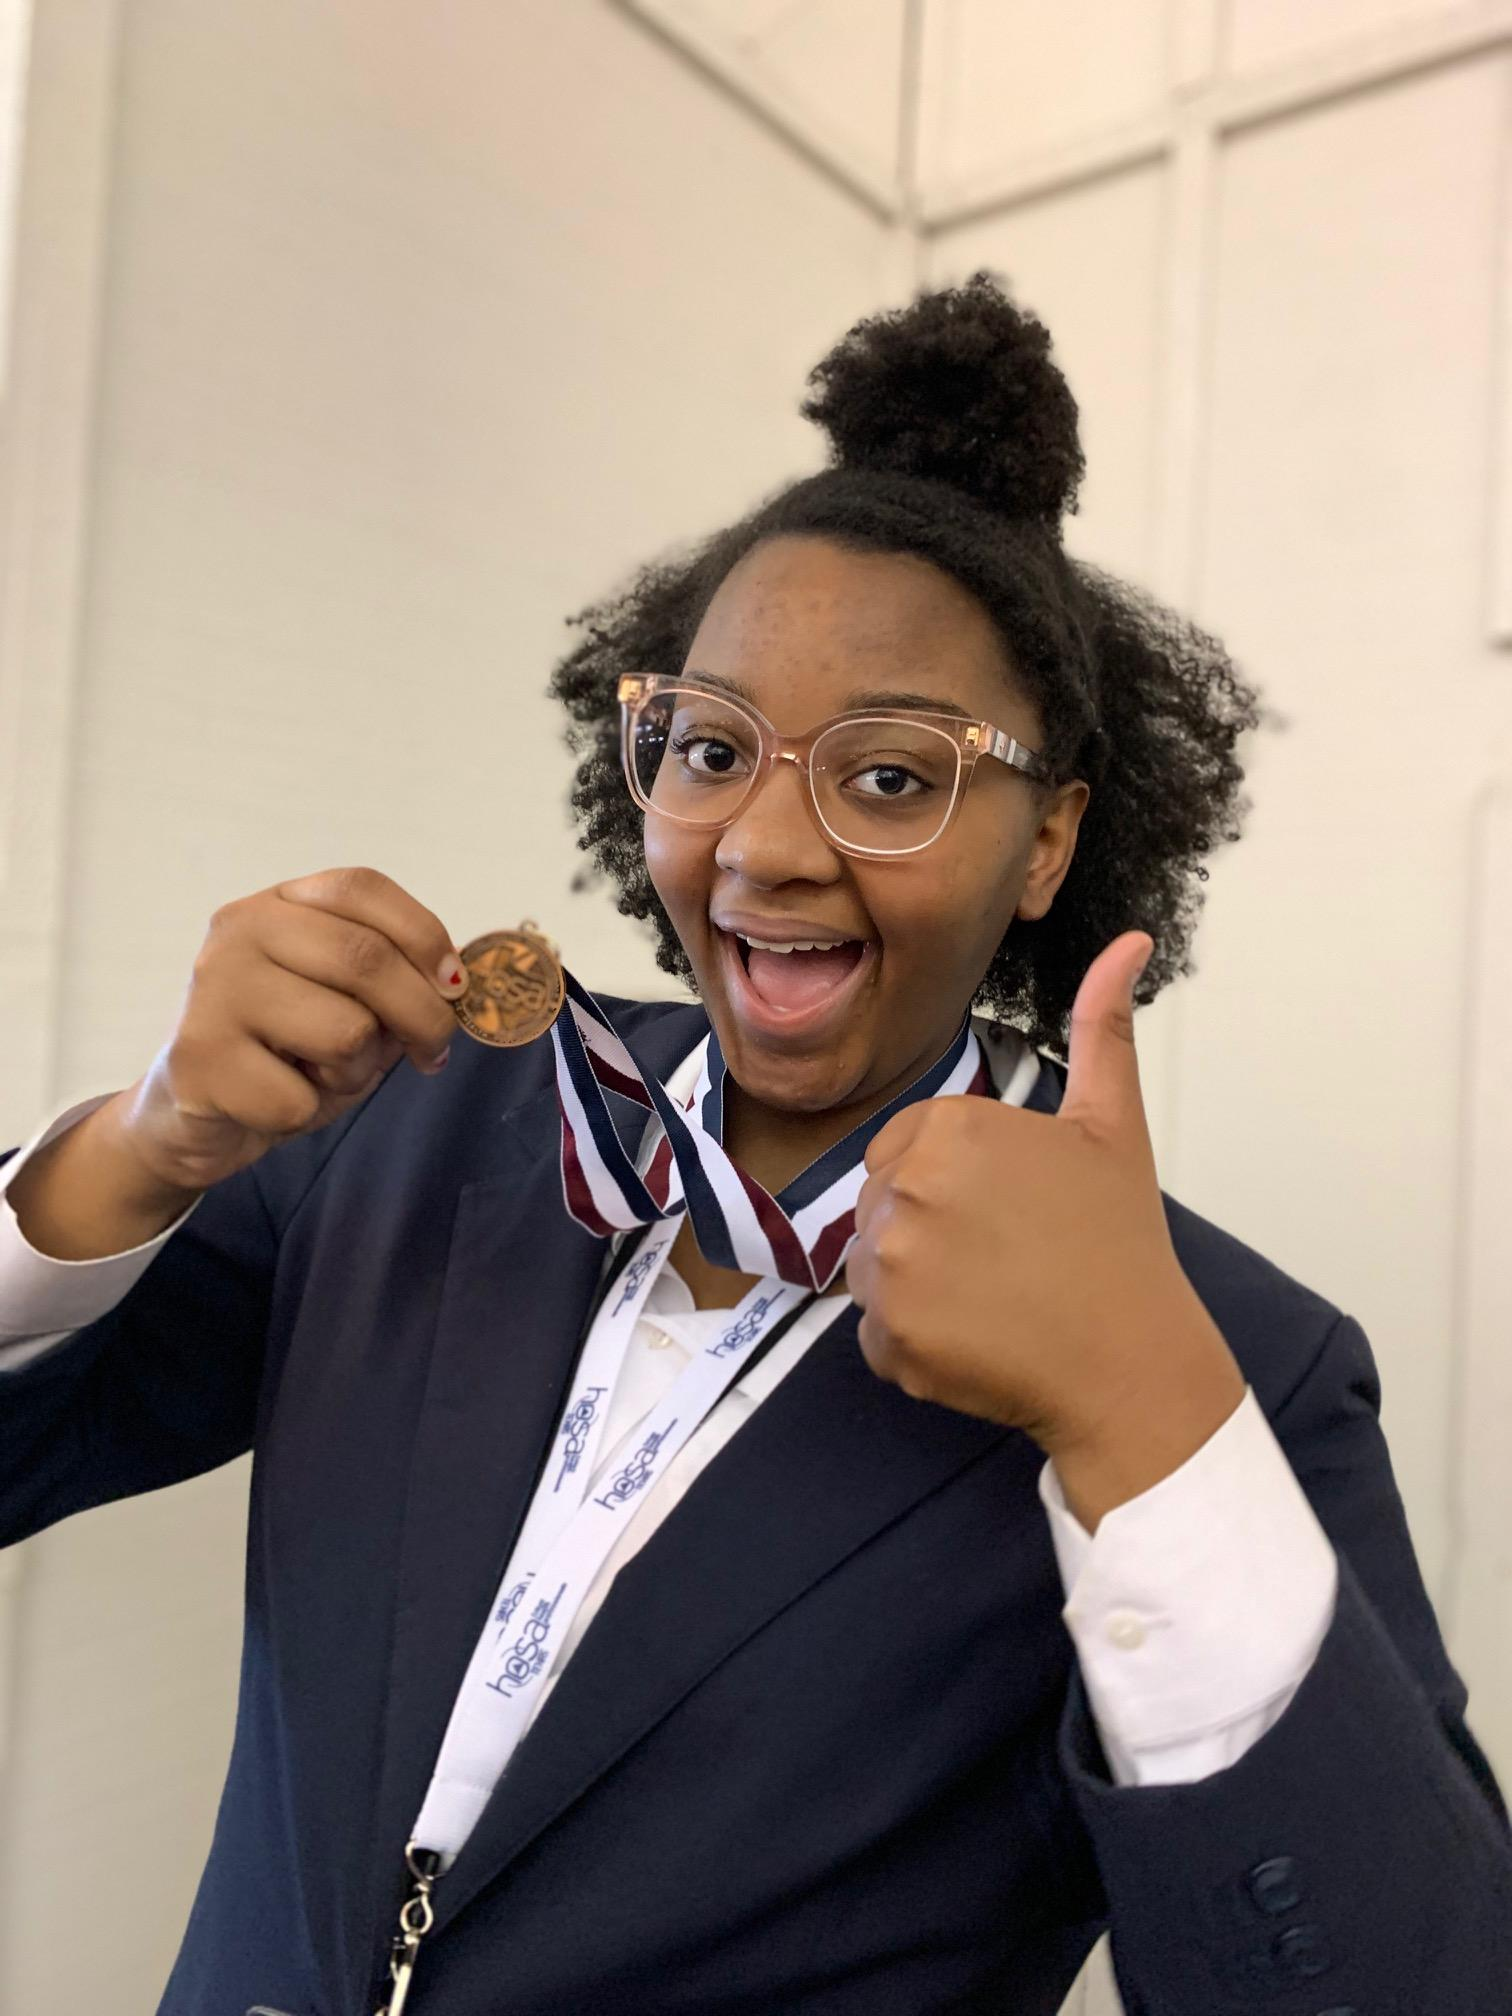 girl gives thumbs up holding medal she earned